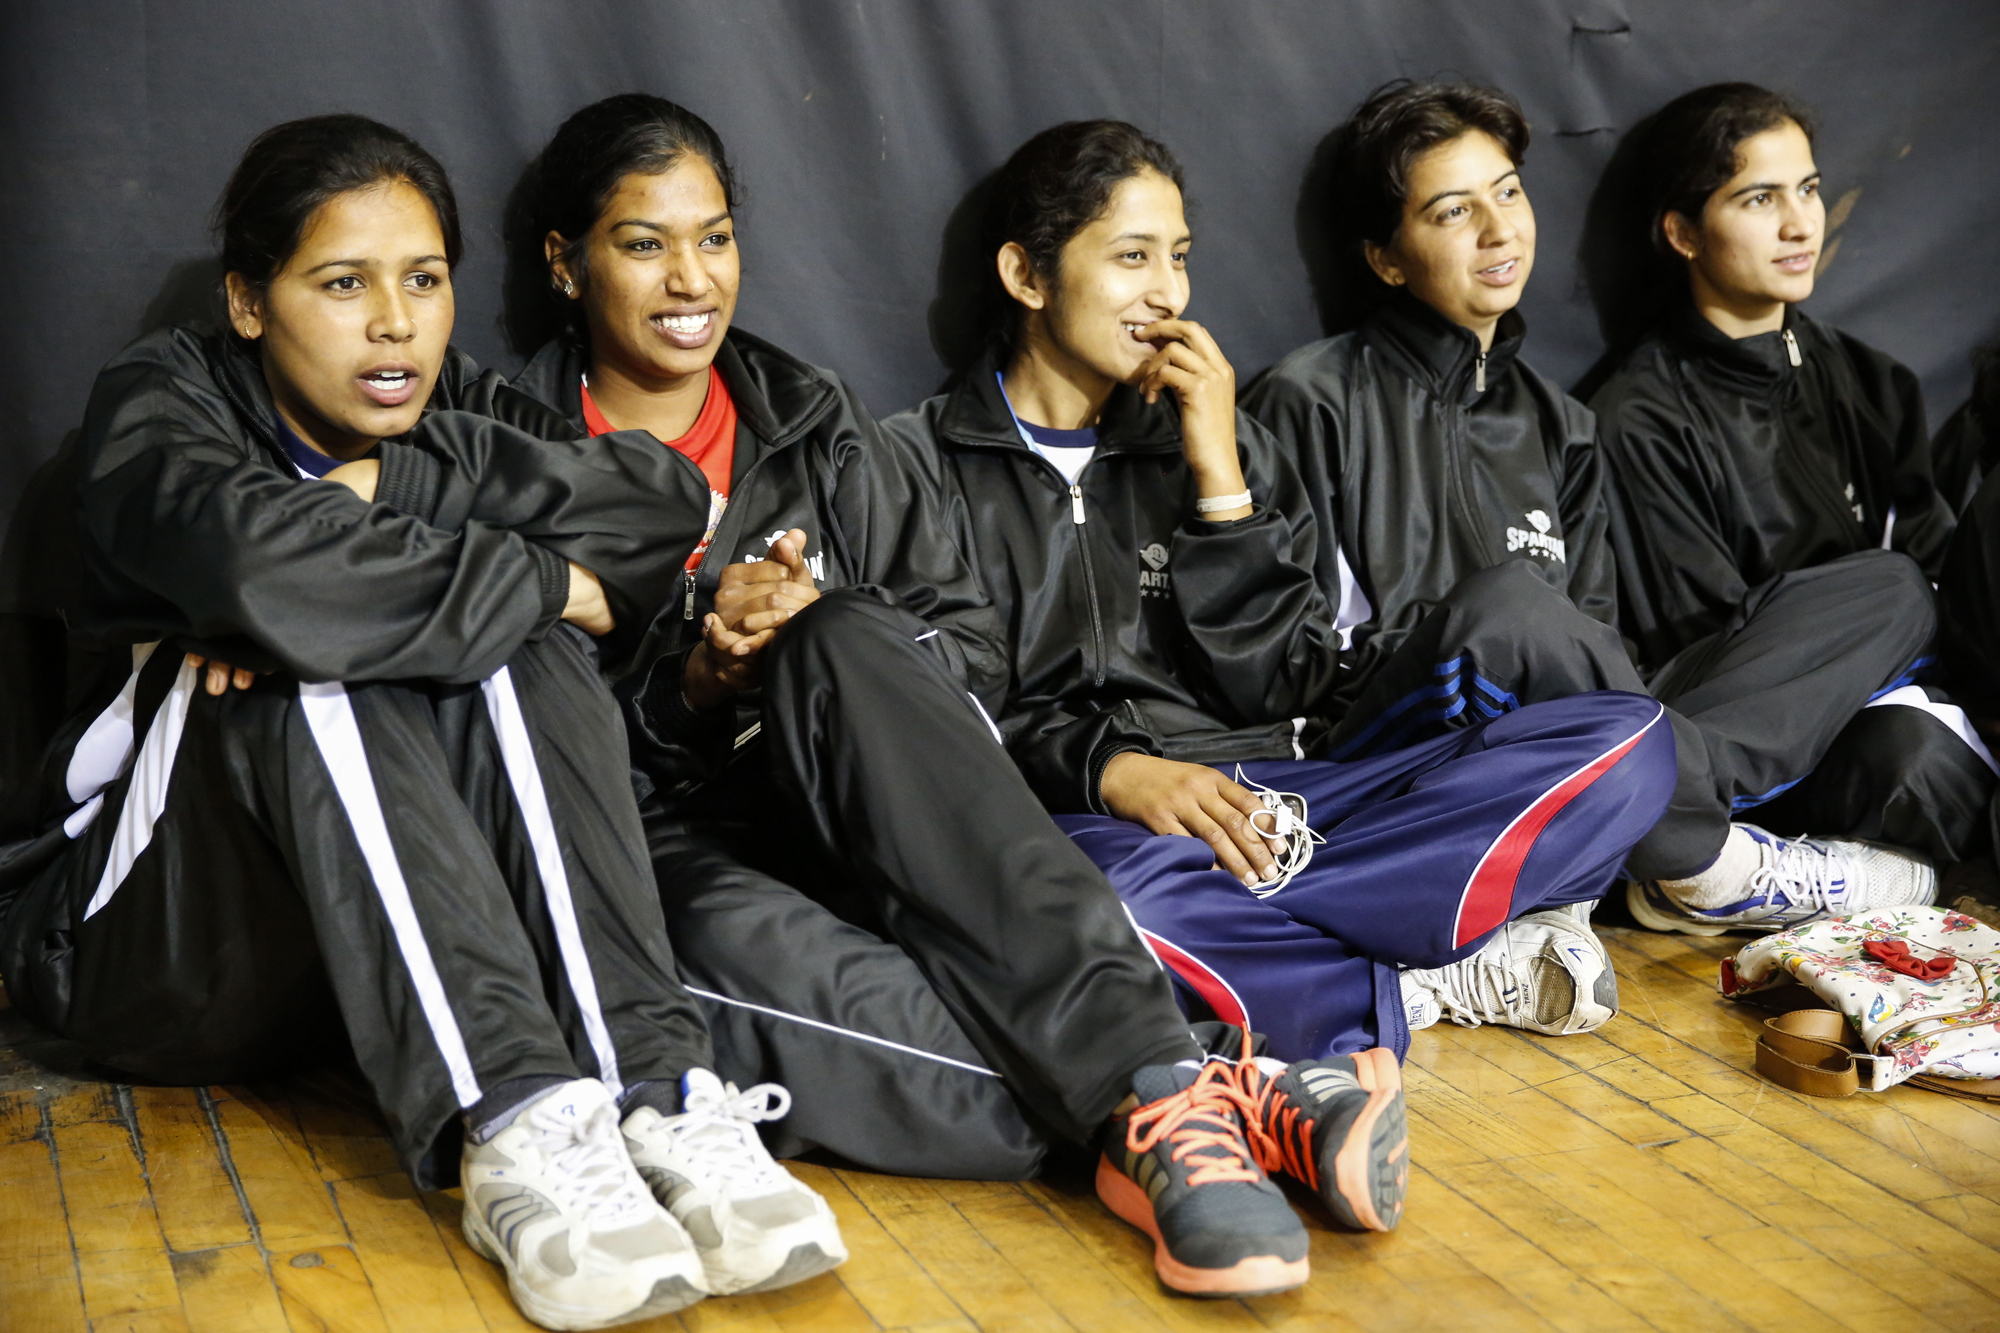 Members of the Rajasthan Women's team watching the action at the 64th Senior National Basketball Championship, Delhi, 2014.